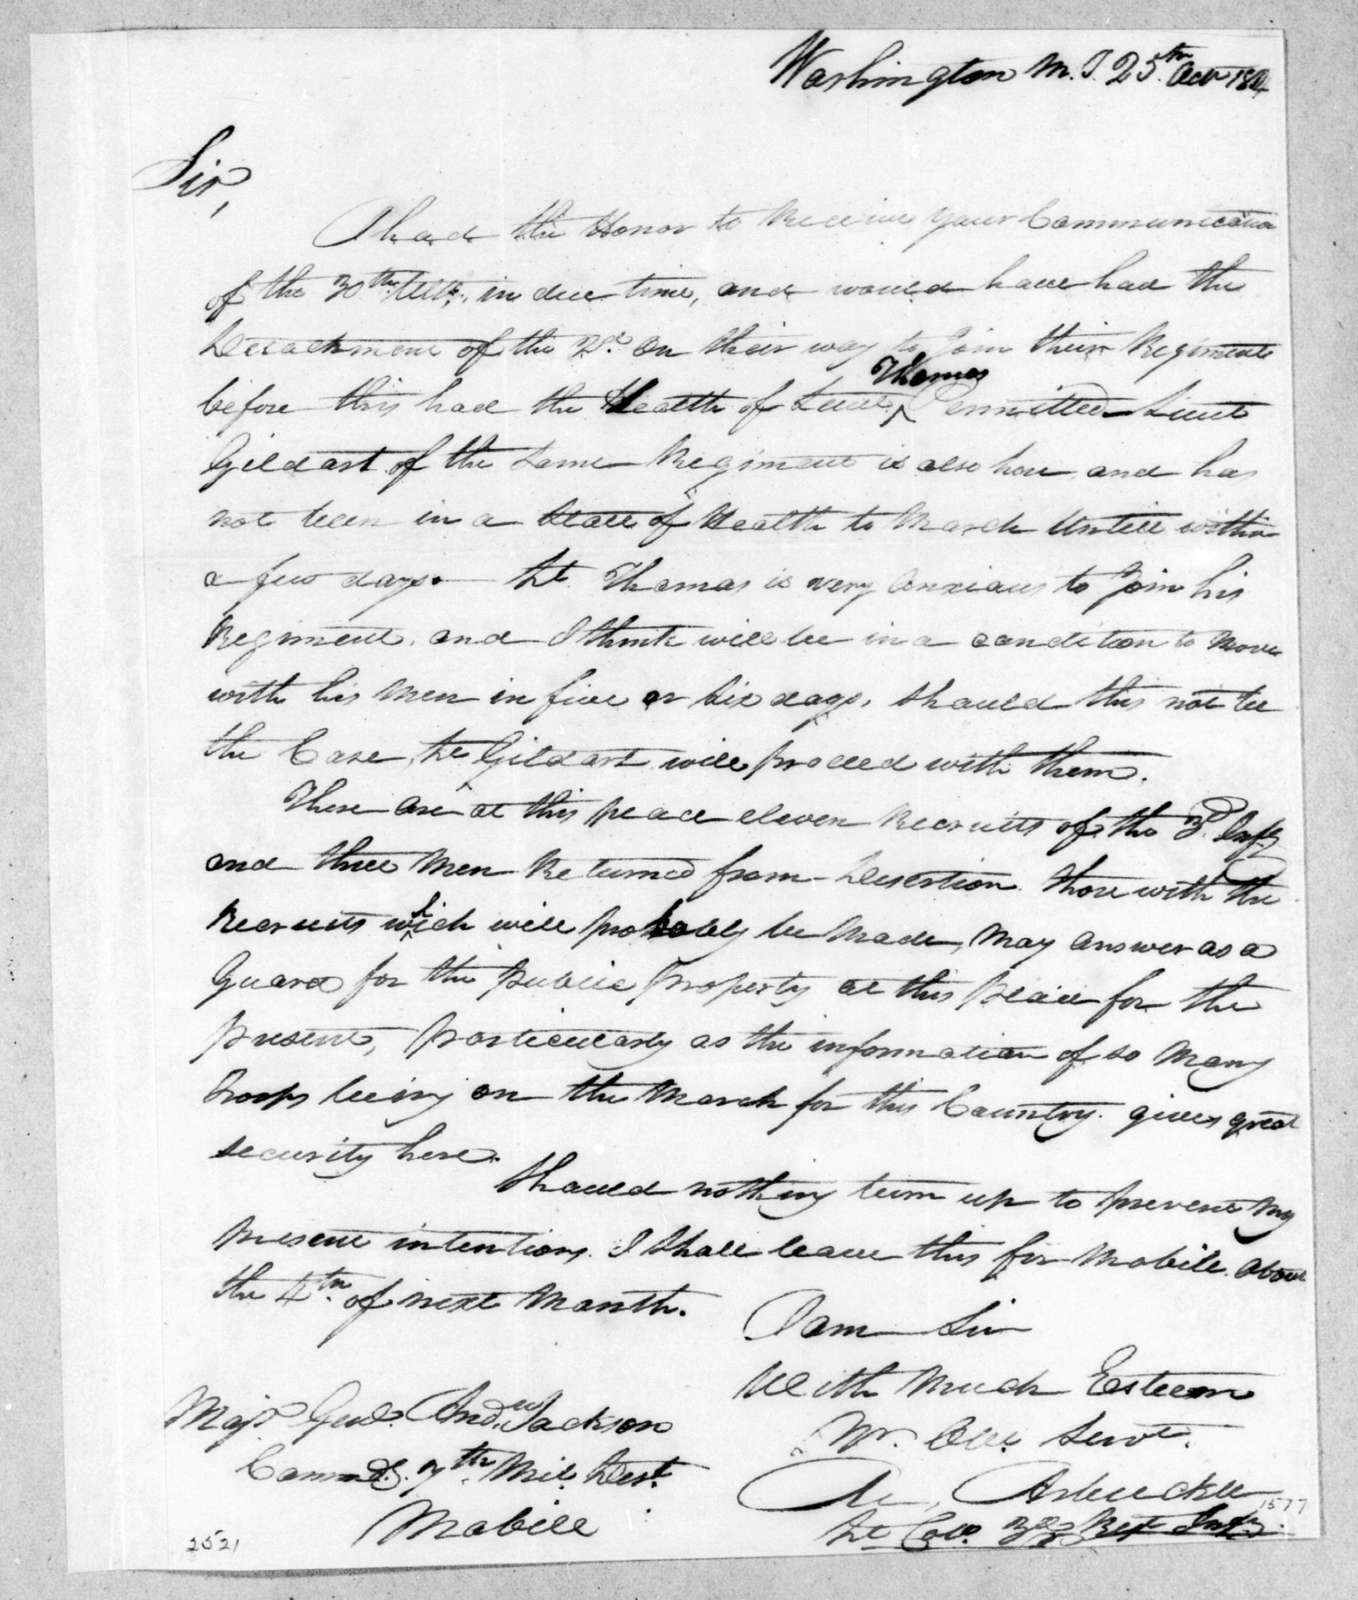 Matthew Arbuckle to Andrew Jackson, October 25, 1814